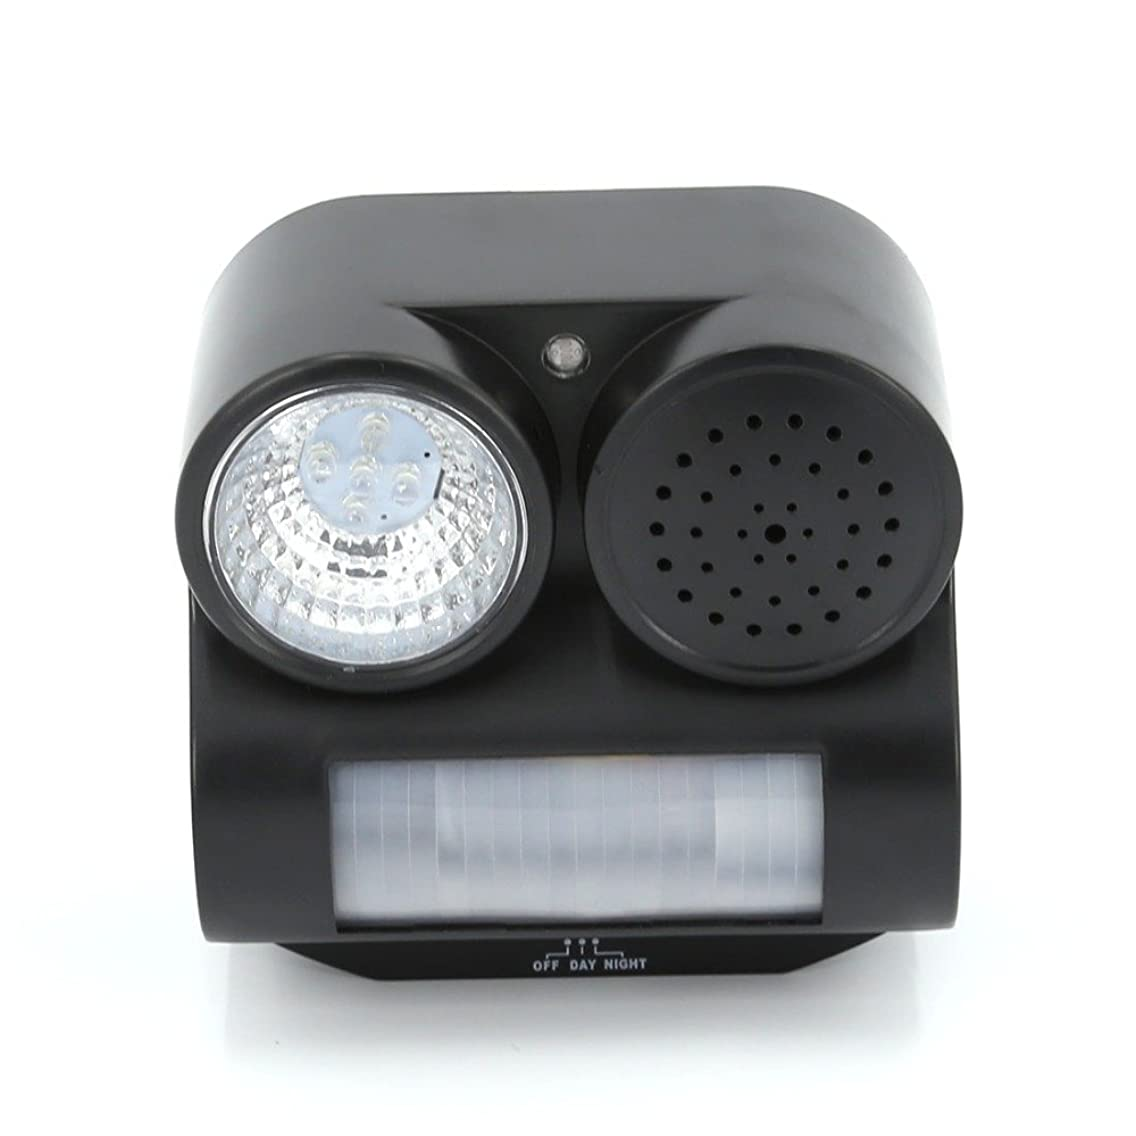 SYH01 1PCS X Ultrasonic PIR Bird Repeller Control with LED